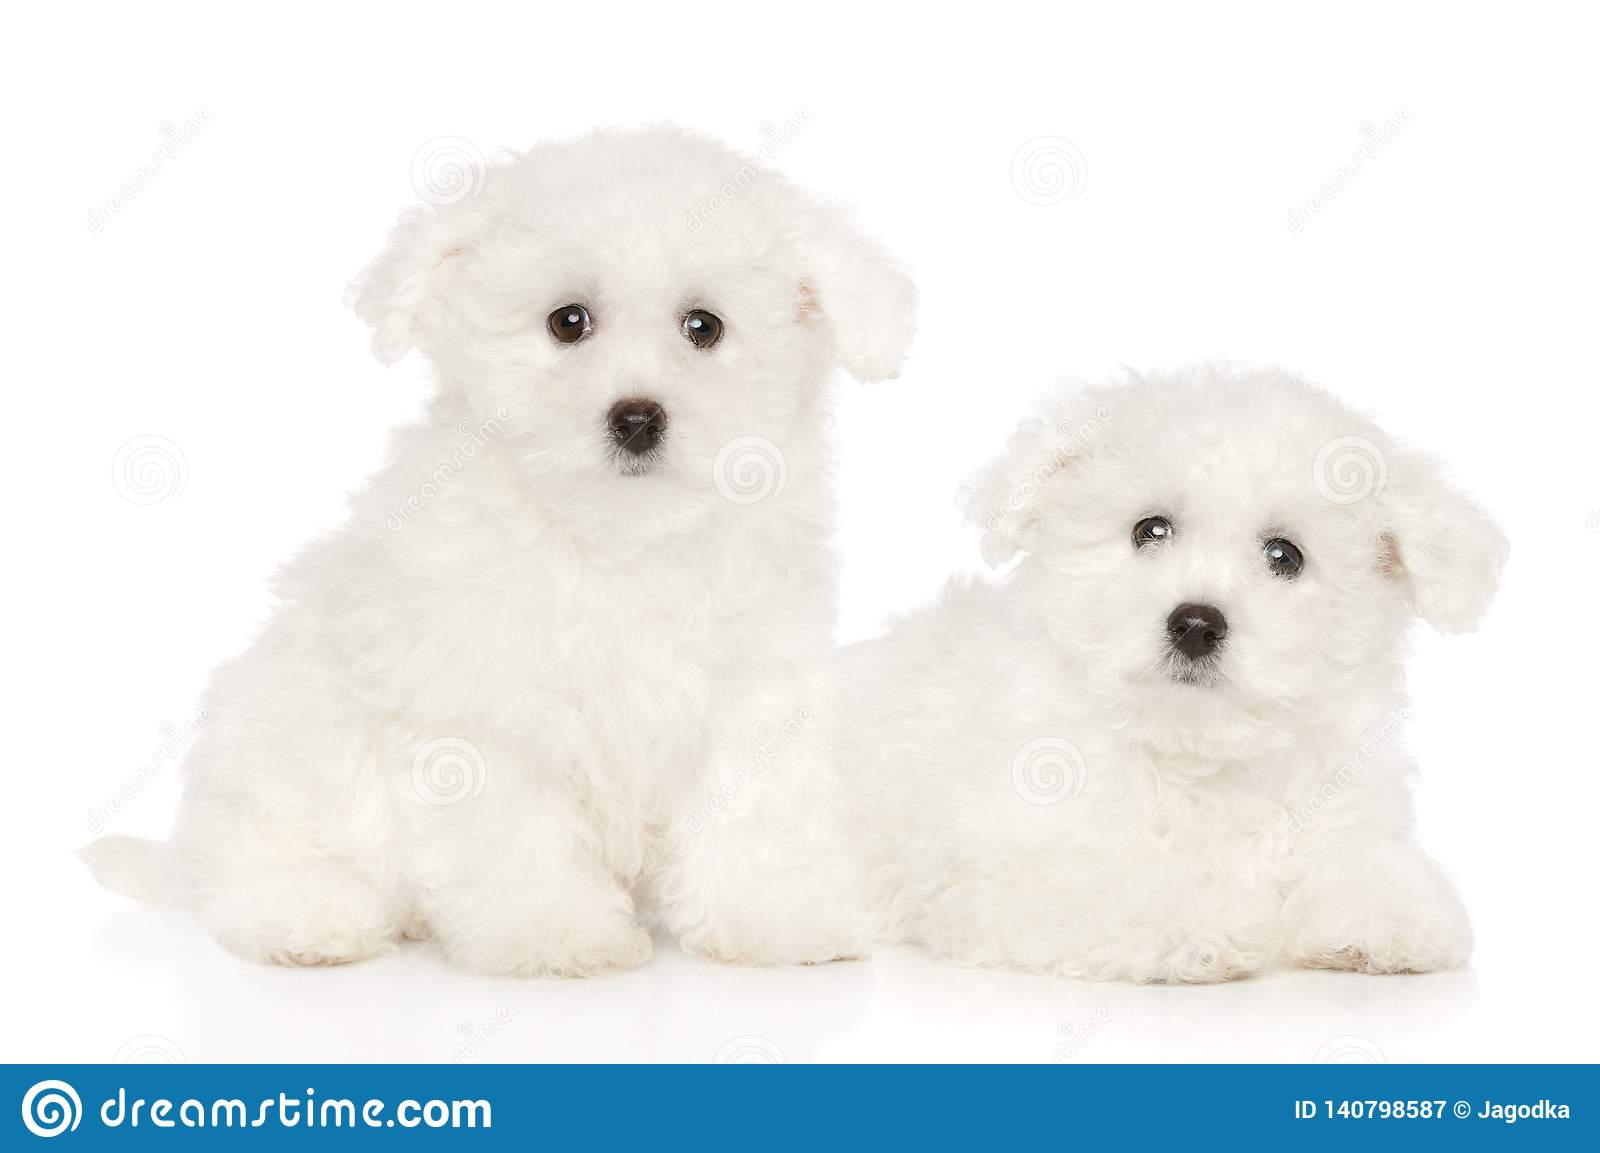 Bichon Frise Puppies On White Background Stock Image - Image